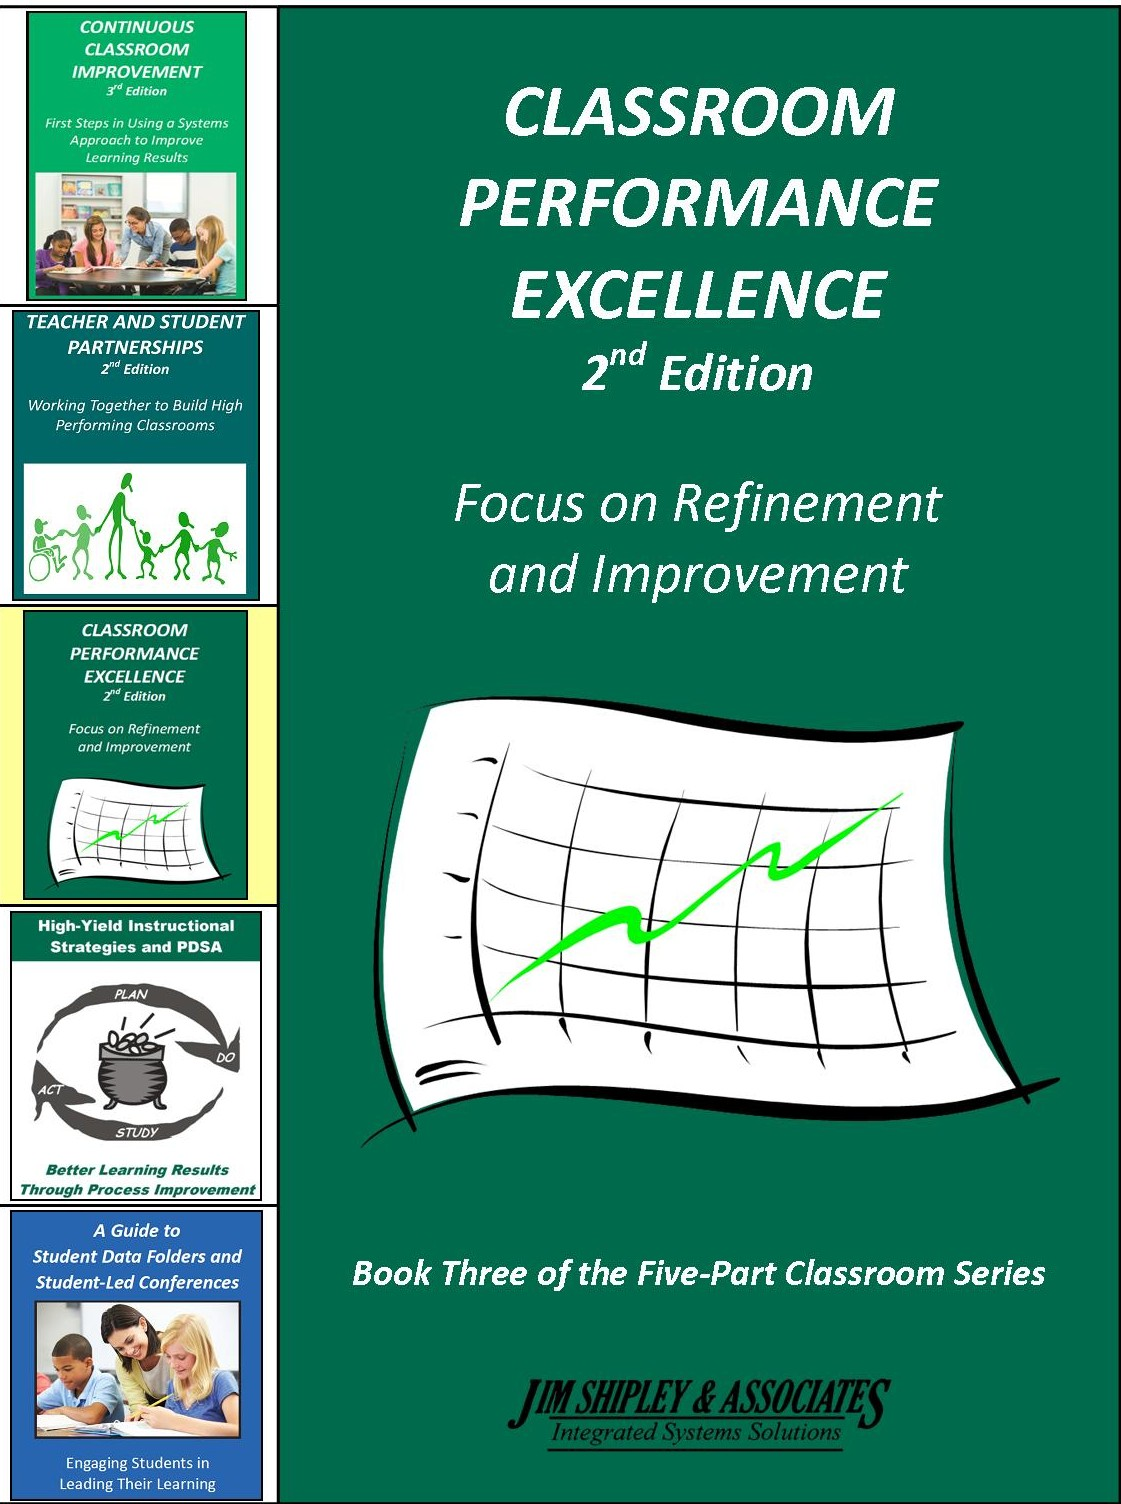 CPE2_2013 - Classroom Performance Excellence 2nd Edition Cover Image